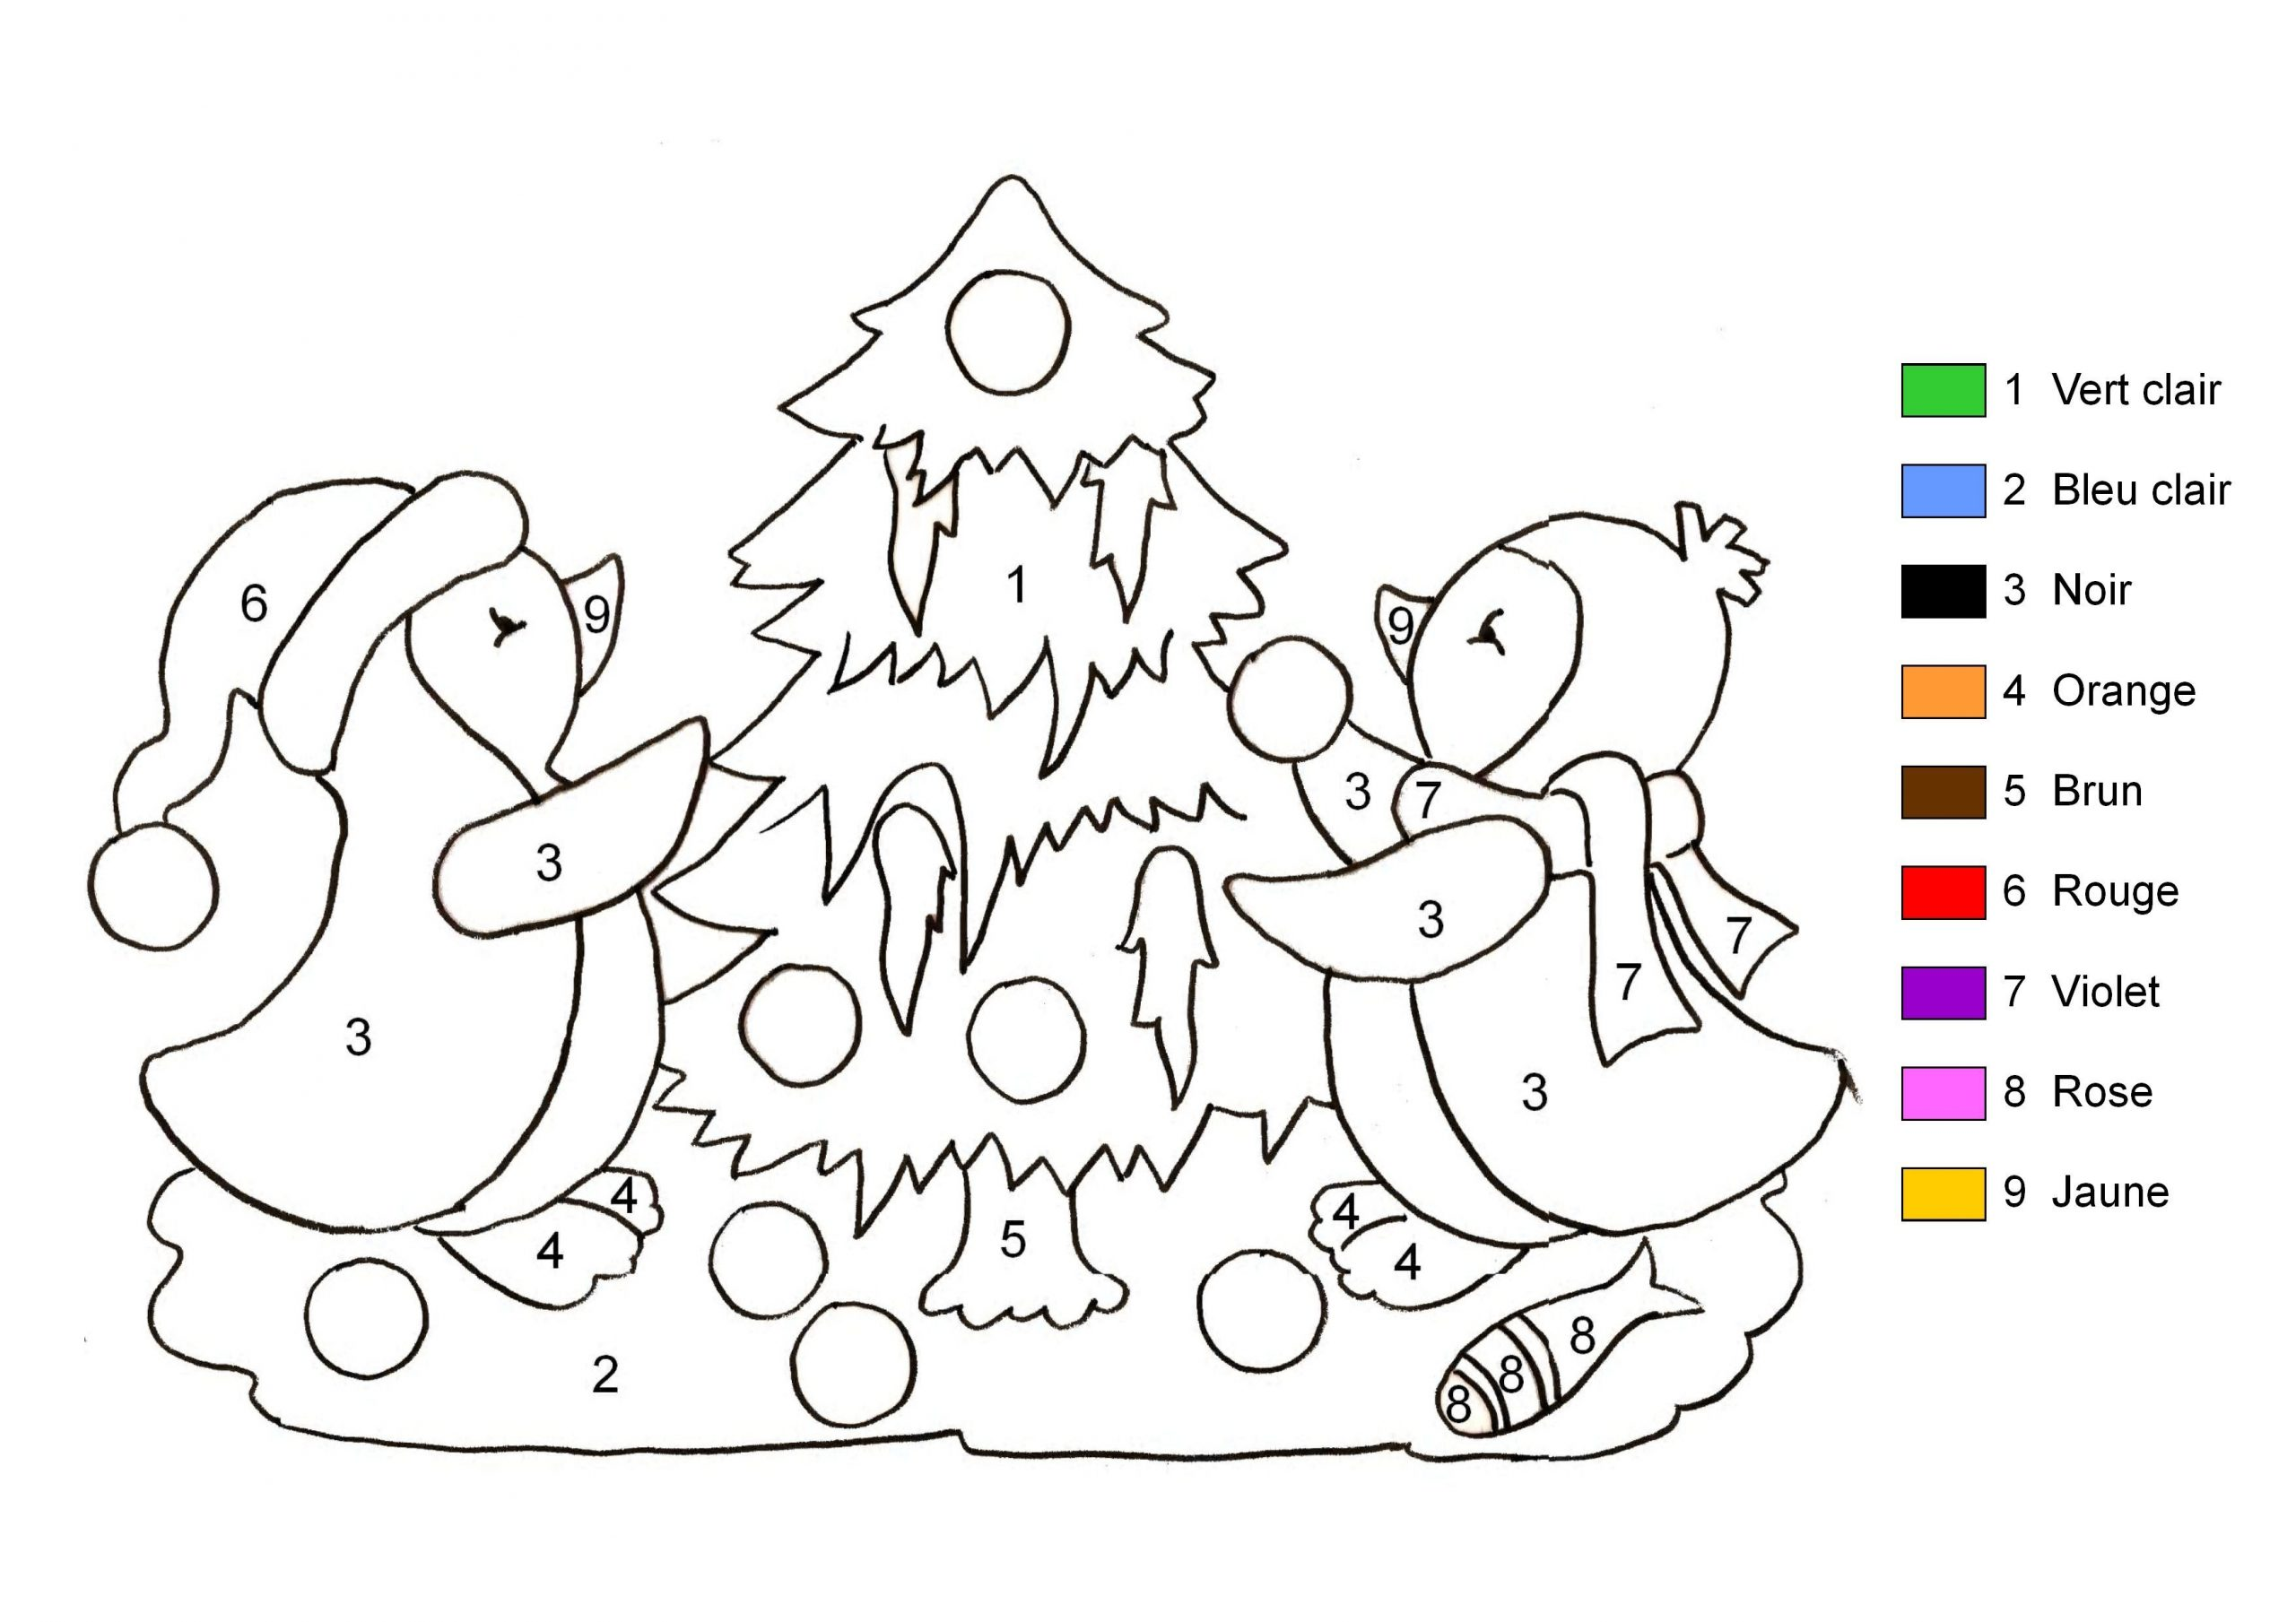 Coloriage Noel Maternelle Grande Section - My Blog à Noel Maternelle Grande Section